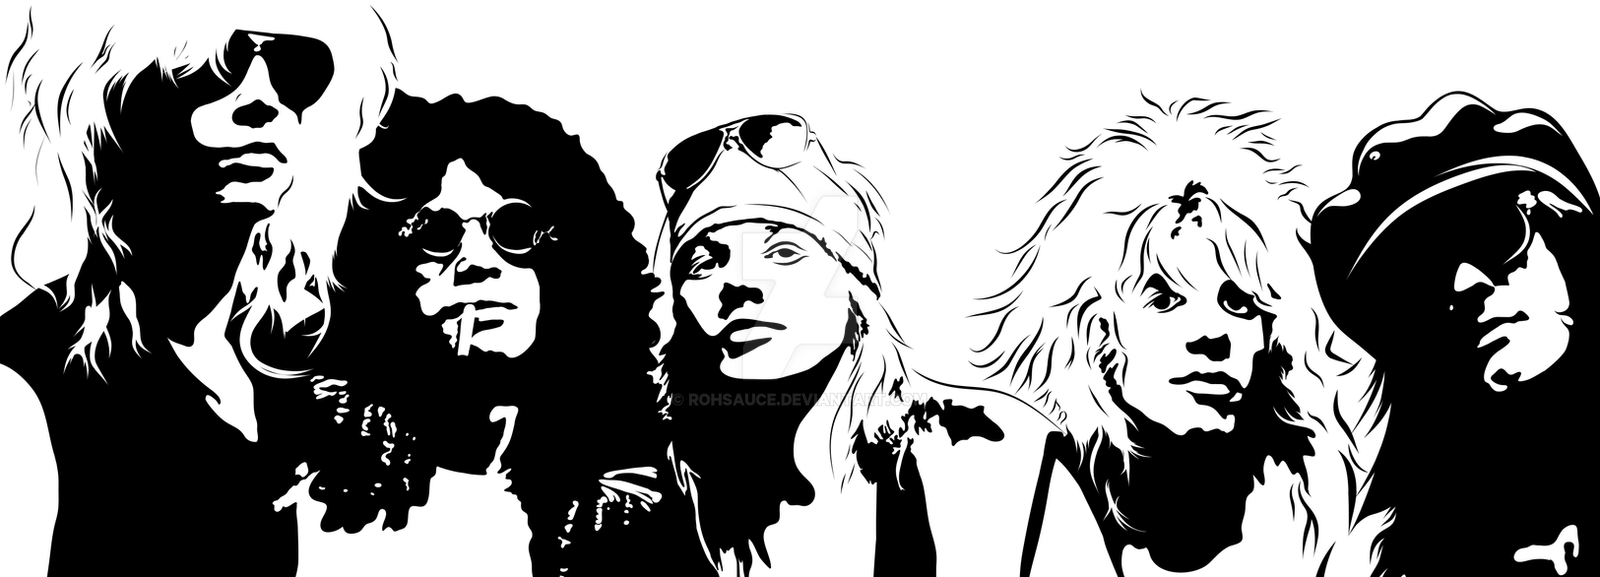 Guns N Roses HQ by Rohsauce on DeviantArt